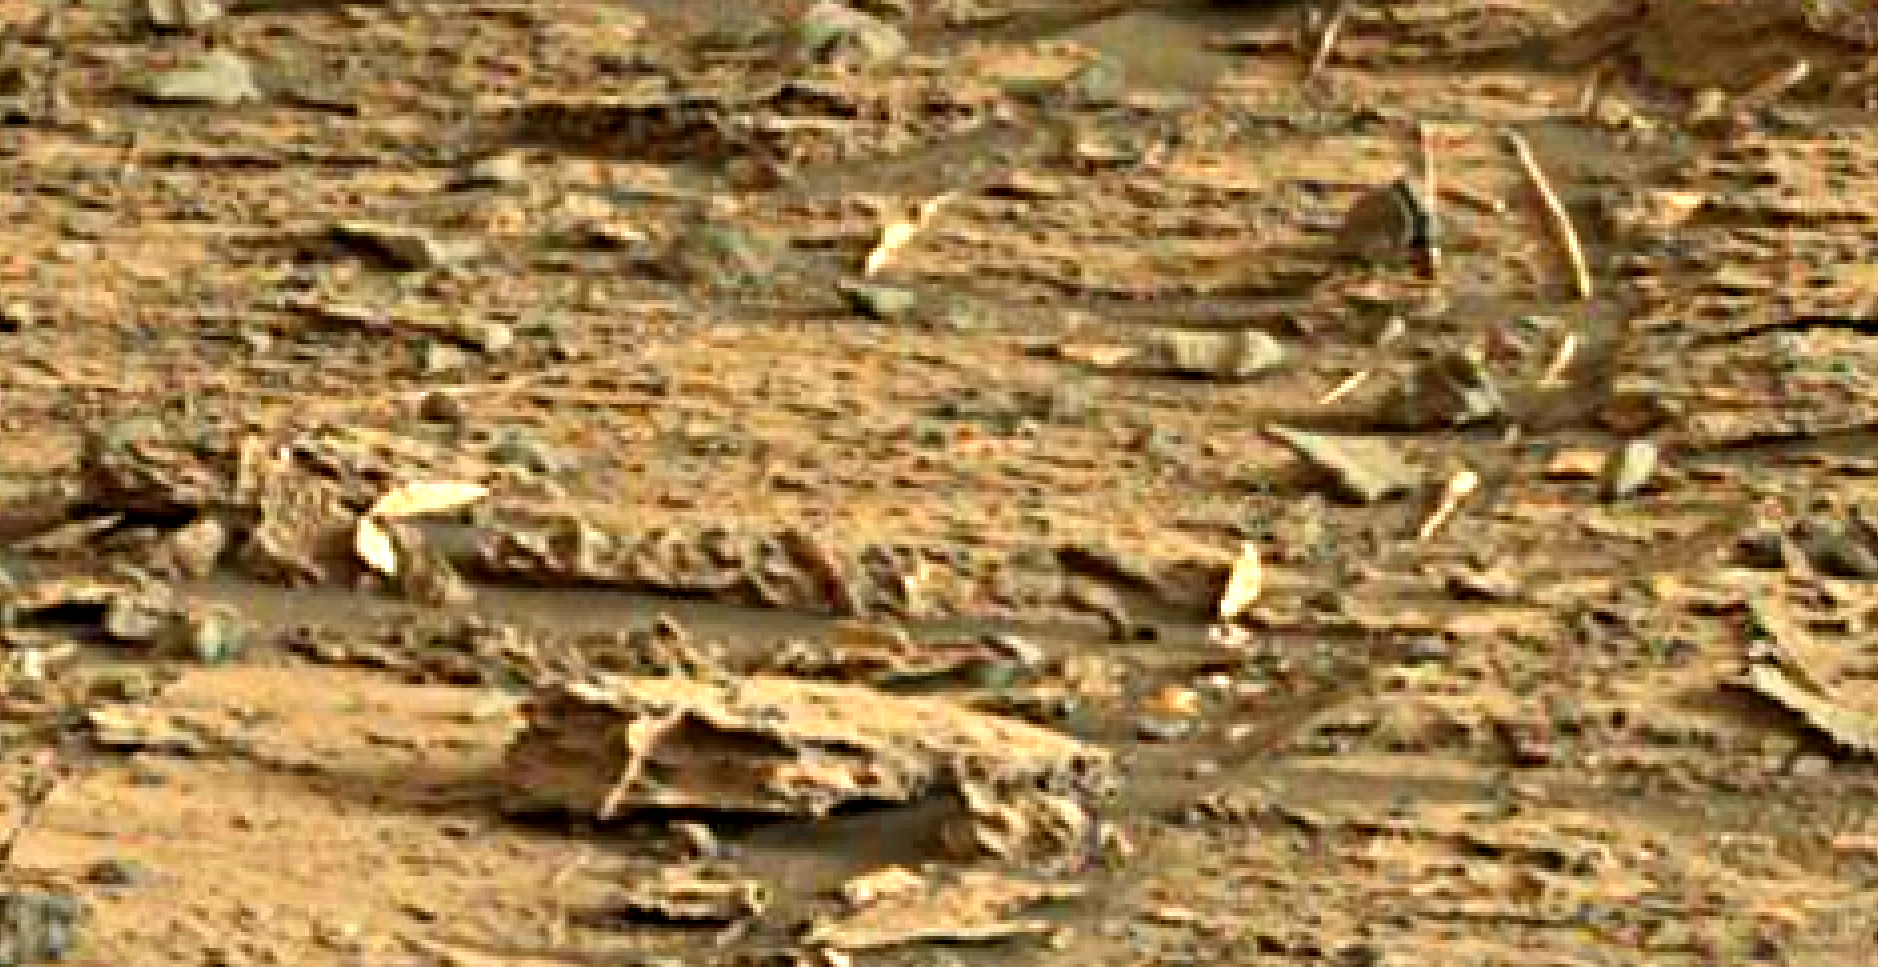 mars-sol-1448-anomaly-artifacts-19-was-life-on-mars